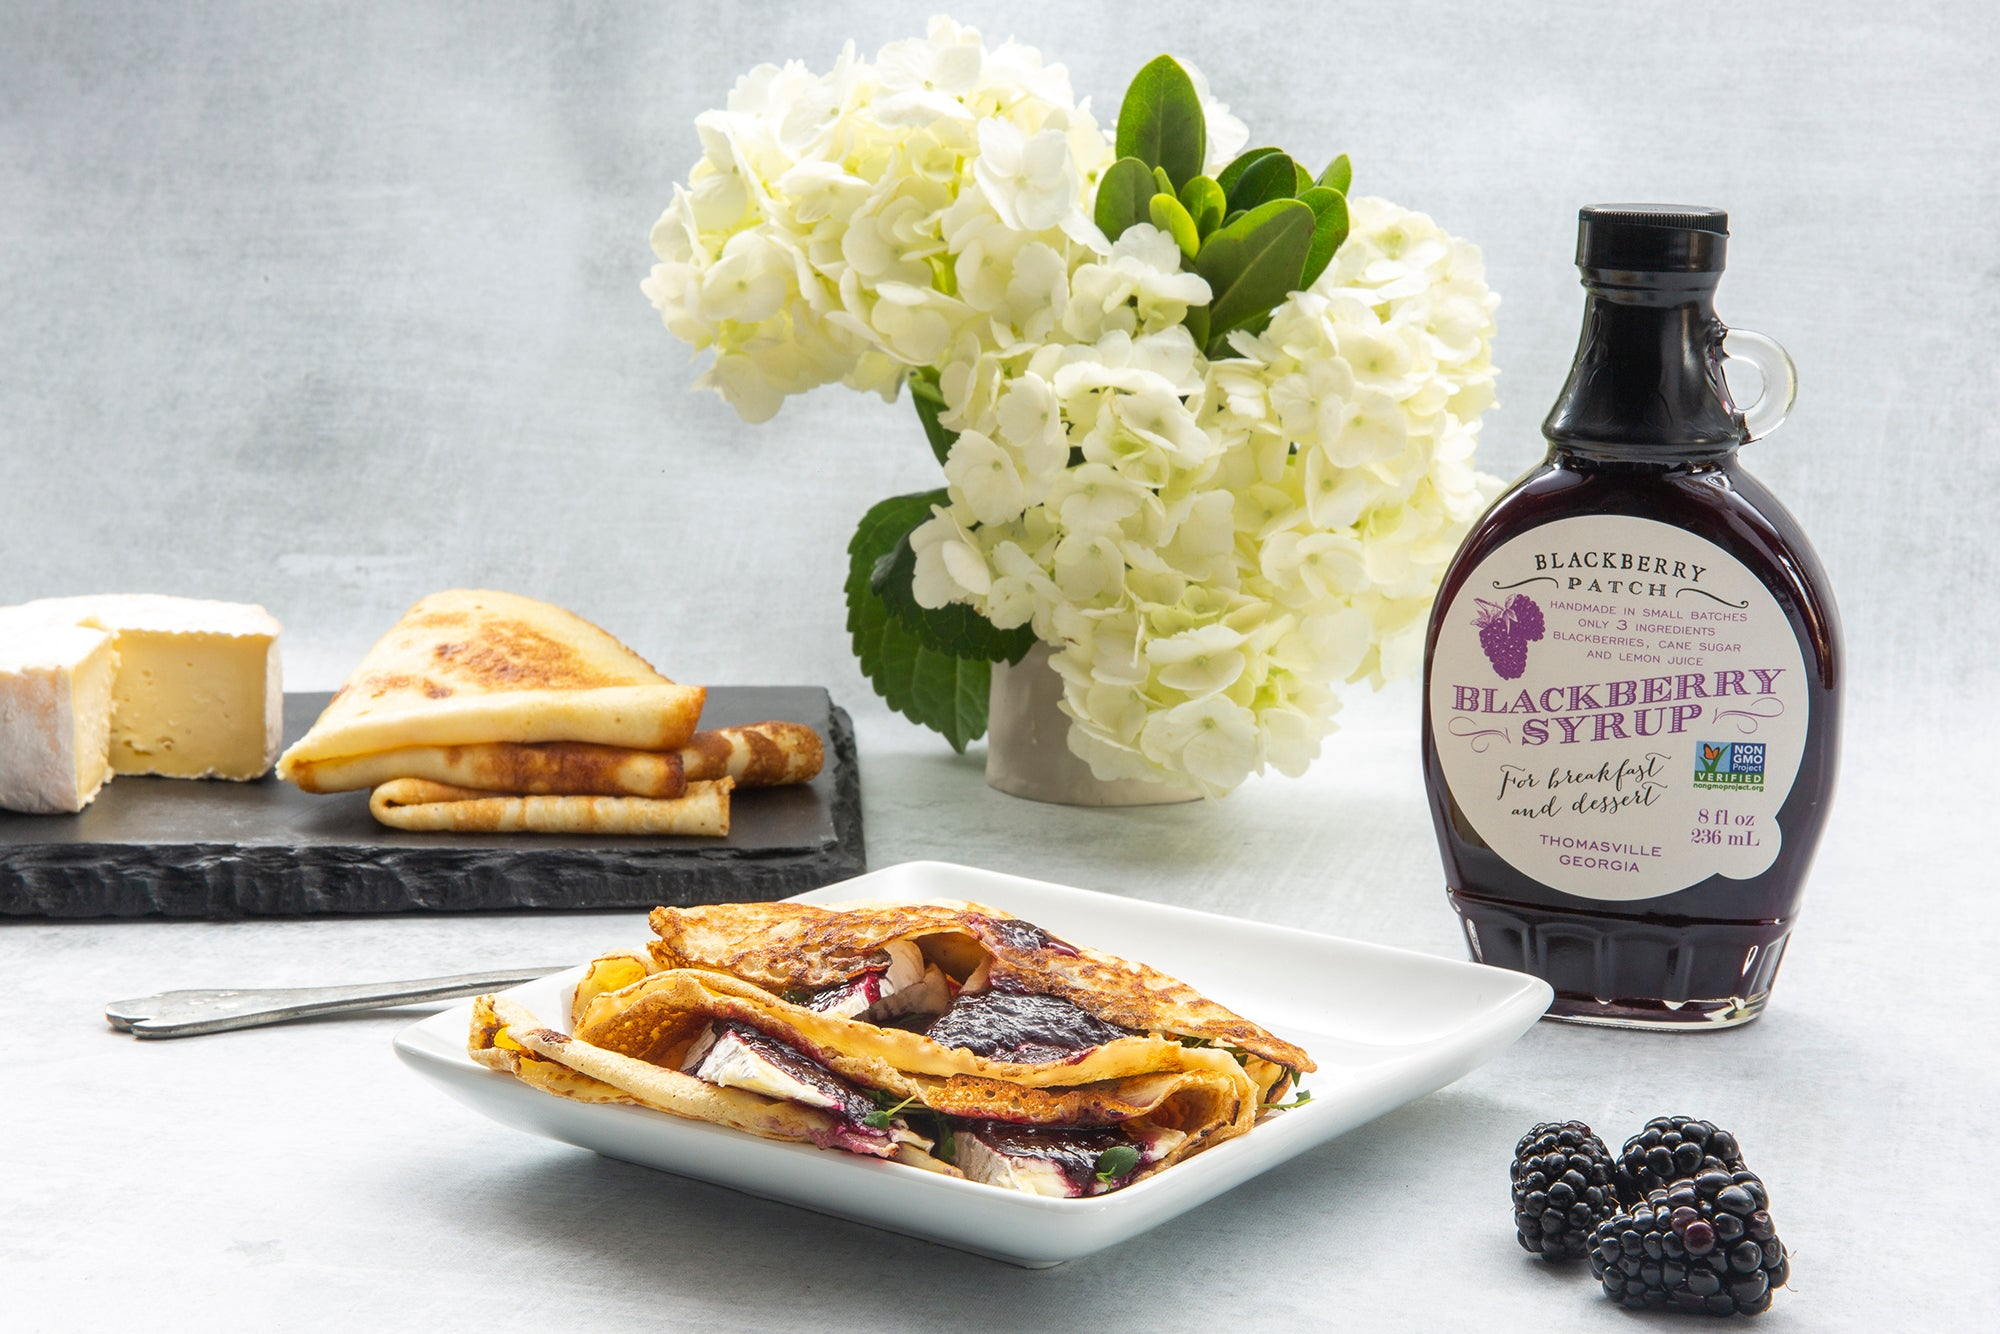 Recipe photo of Blueberry and Camembert Crepe using Blackberry Patch Premium Blackberry Syrup